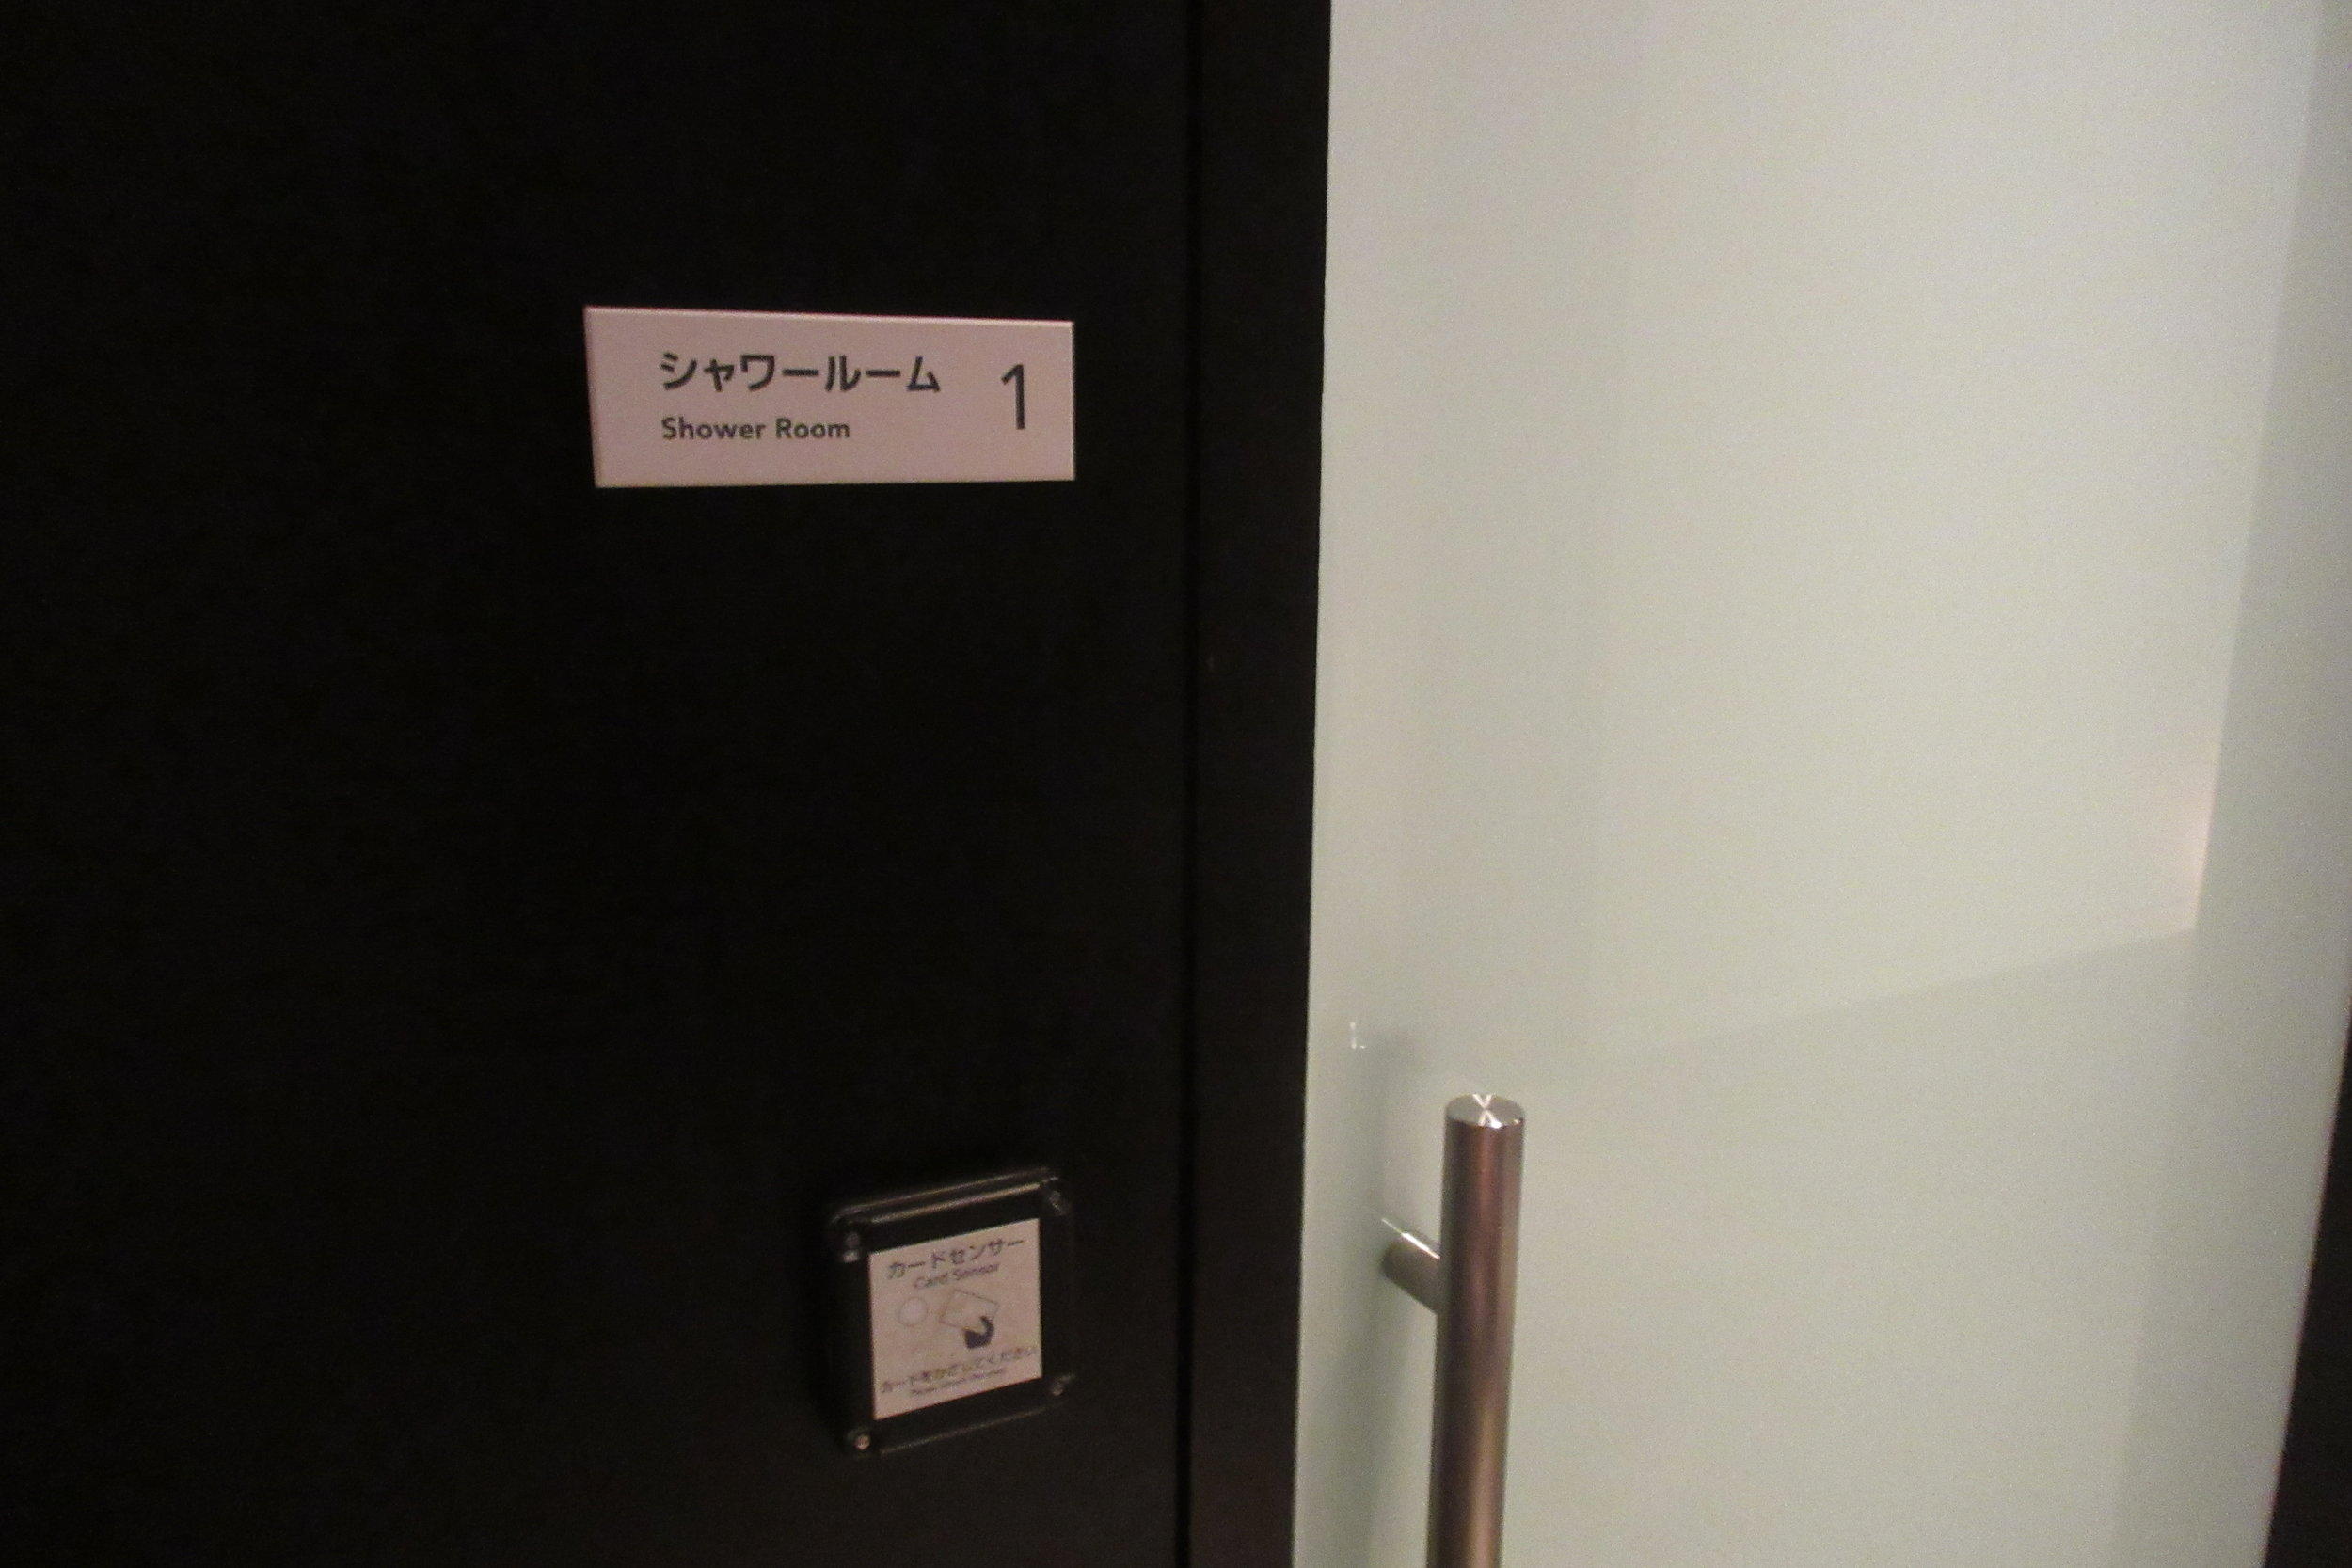 Japan Airlines First Class Lounge Tokyo Narita – Shower room entrance